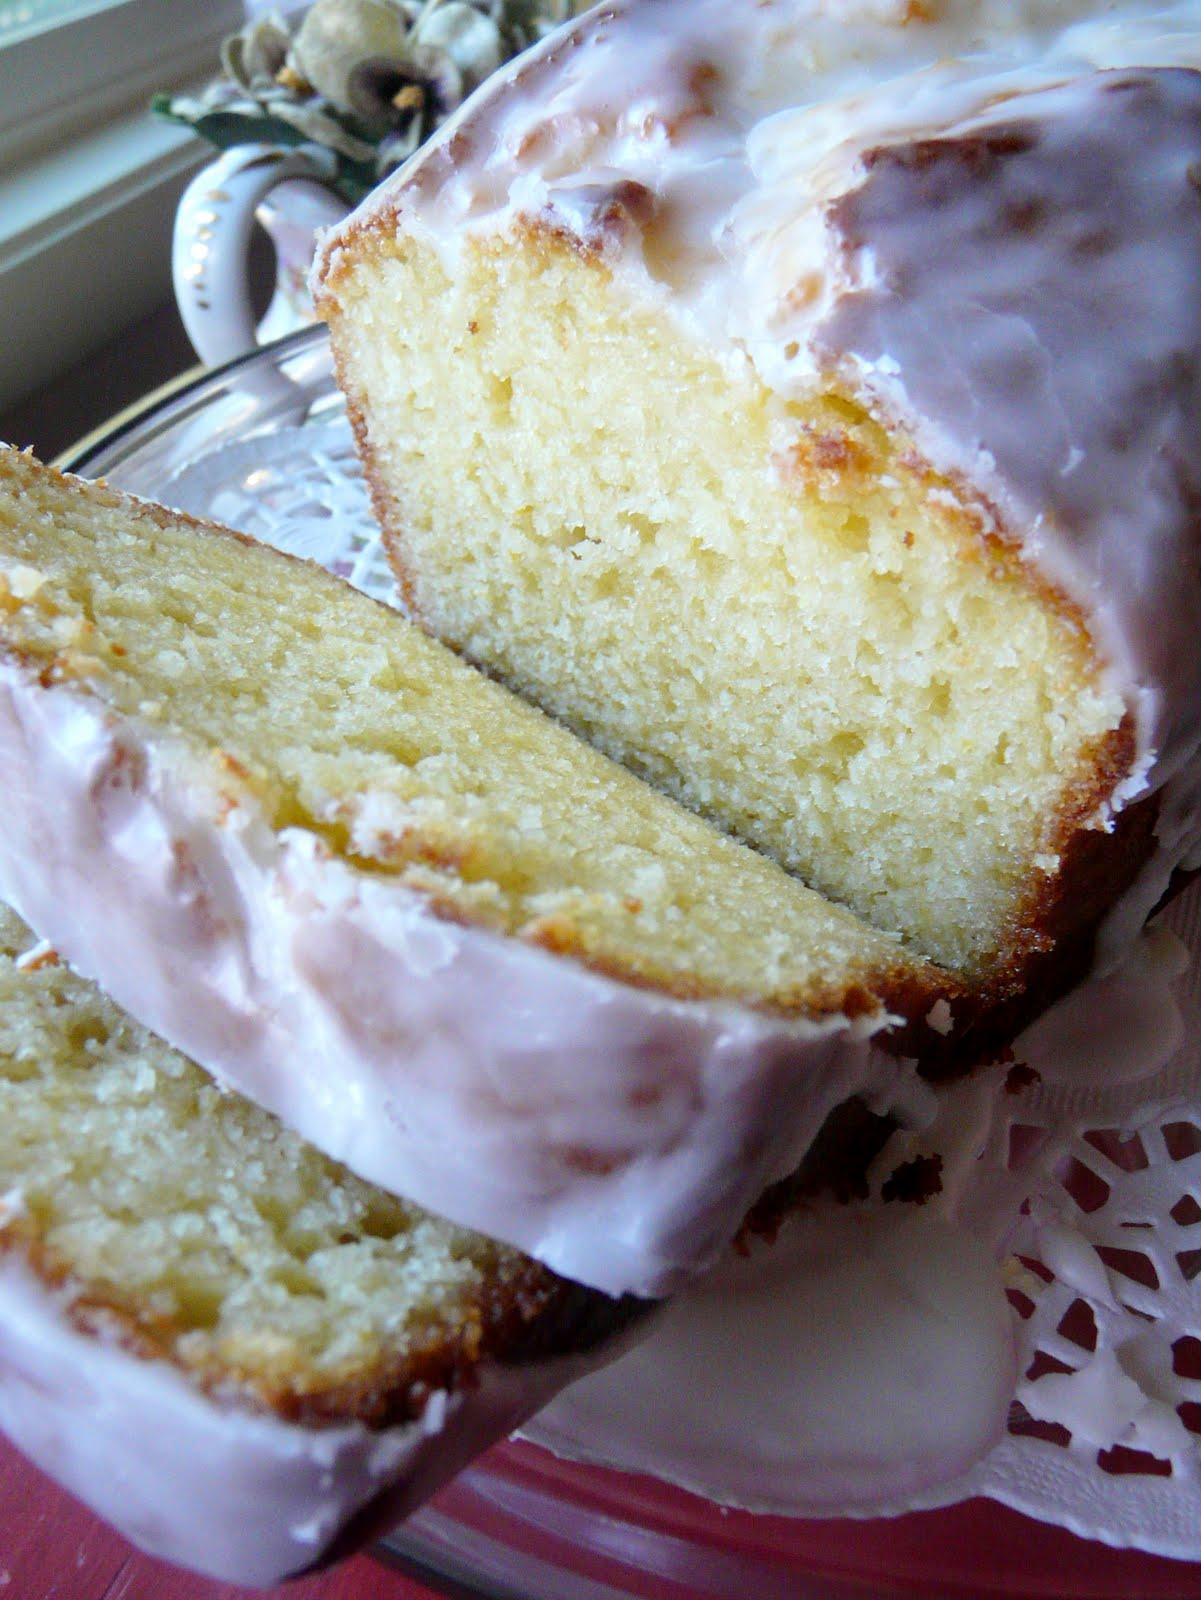 ... by Rook No. 17*: Baking with Olive Oil -- Luscious Lemon Yogurt Cake